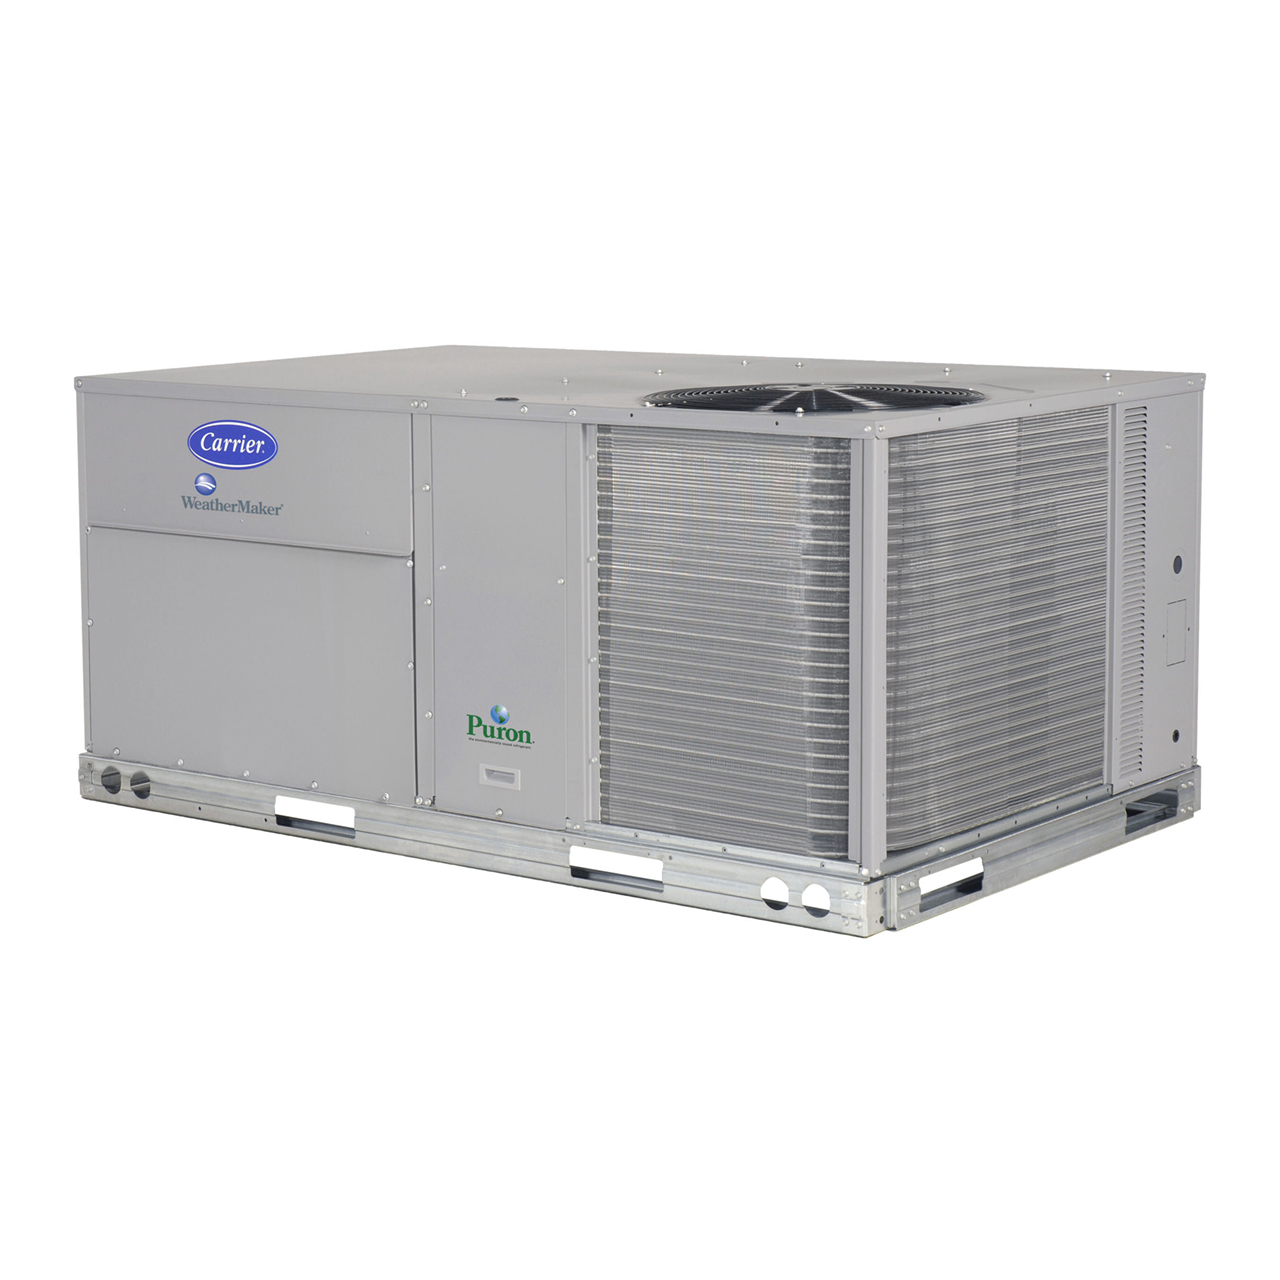 """48KC WeatherMaker® rooftop units were designed by customers for customers. With a gauge plug, centralized control center, plug & play accessory board, """"no-strip screw"""" collars, and handled access panels, we've made the unit easy to install, easy to maintain, and easy to use."""